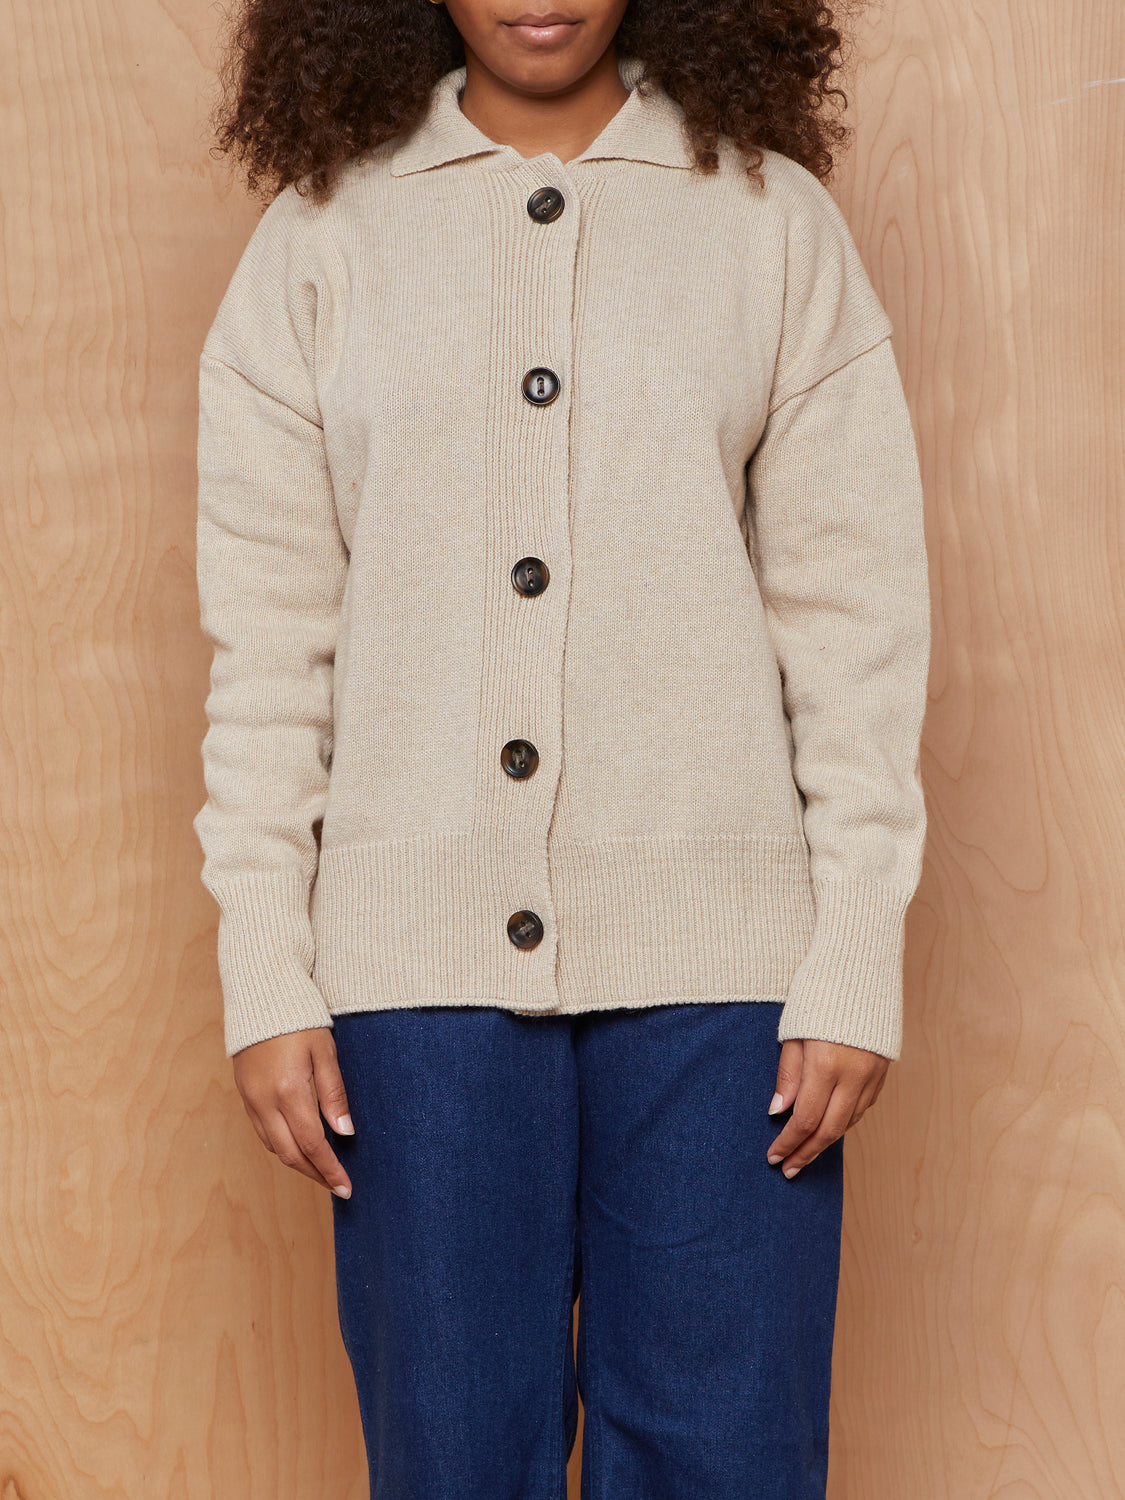 3.3 Field Trip Beige Button Up Sweater